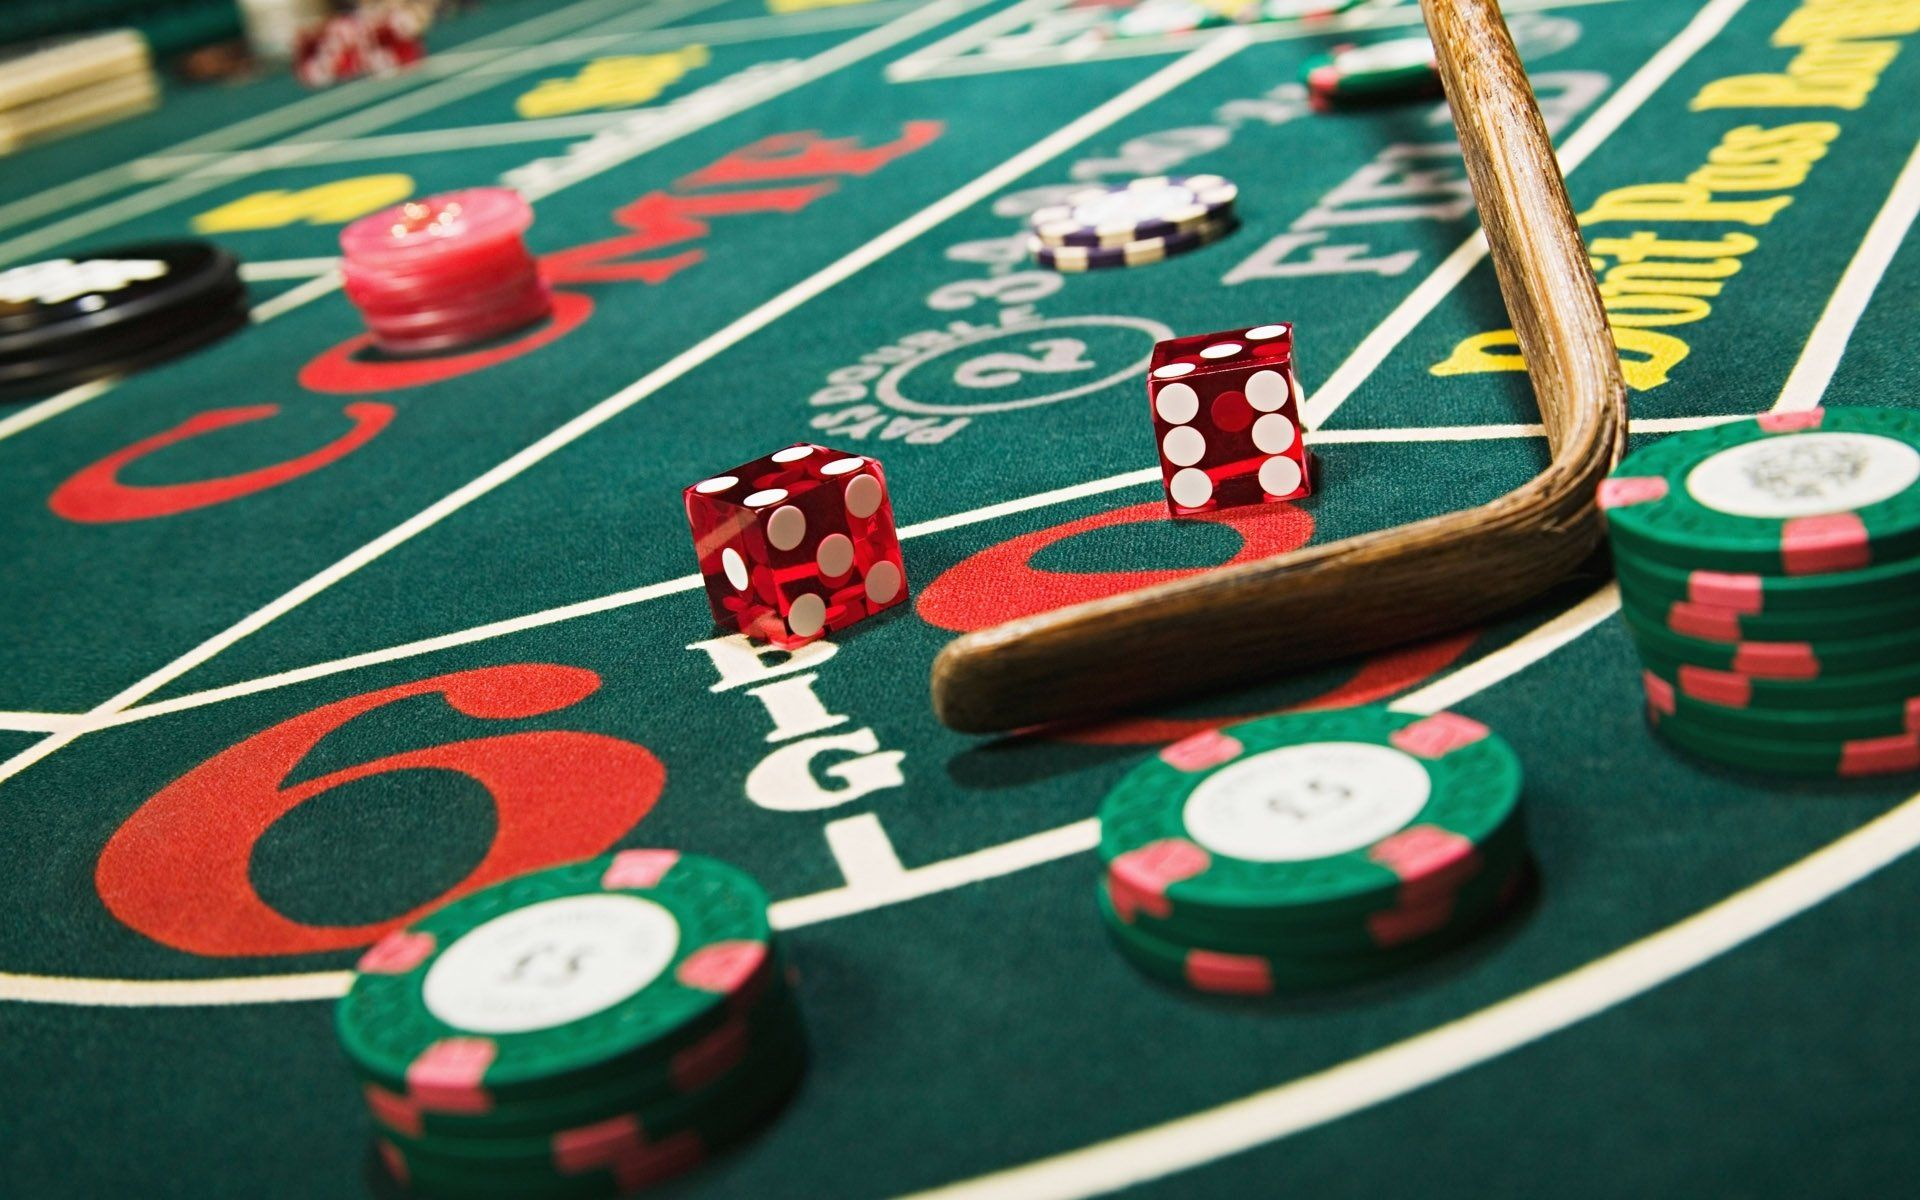 Uncommon Write-up Uncovers The Deceitful Practices Of Casino